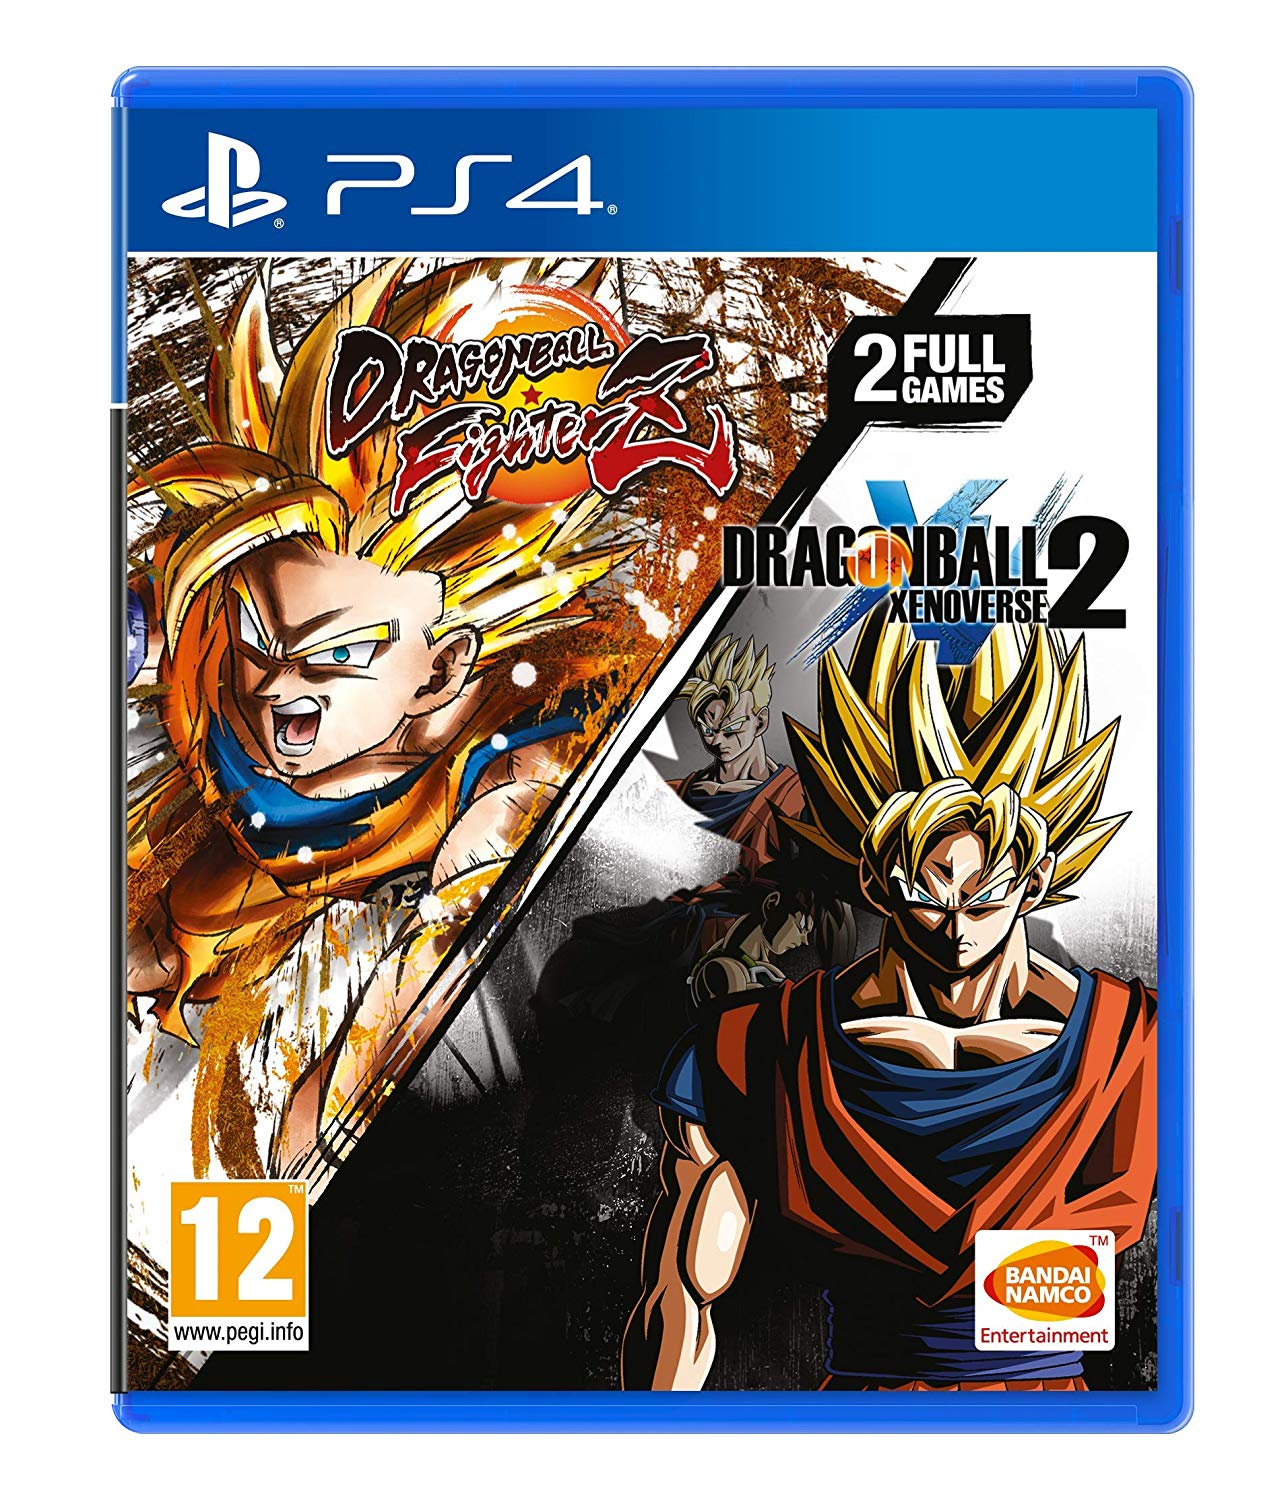 Cl dbfand2ps4cover